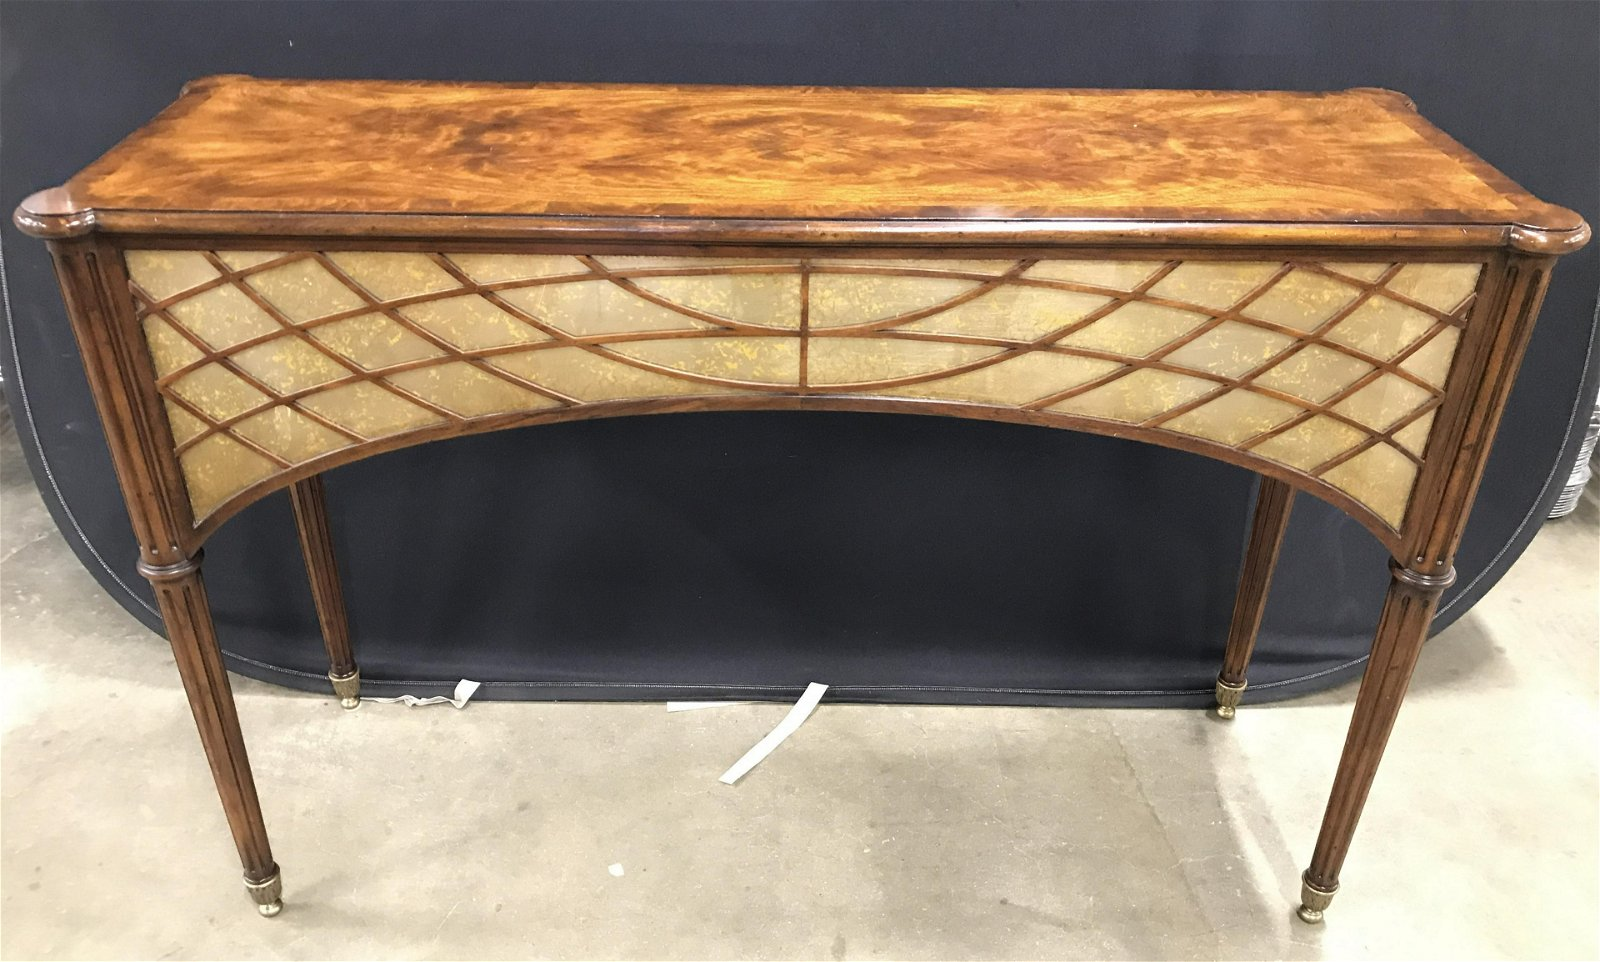 Carved Wooden High Console Table